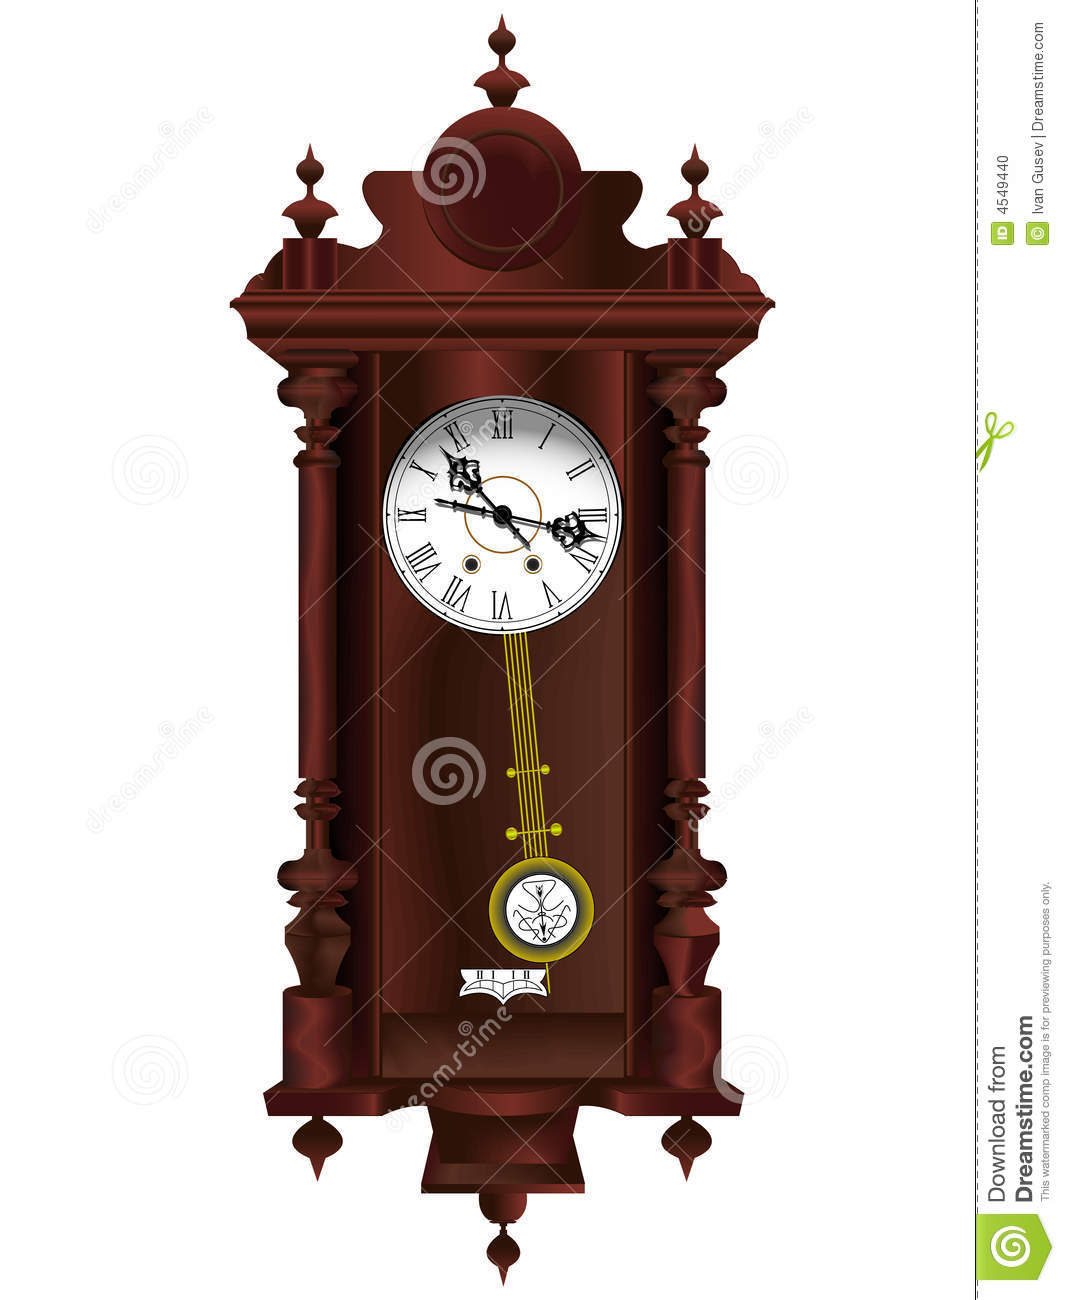 horloge en bois ancienne illustration de vecteur illustration du antique 4549440